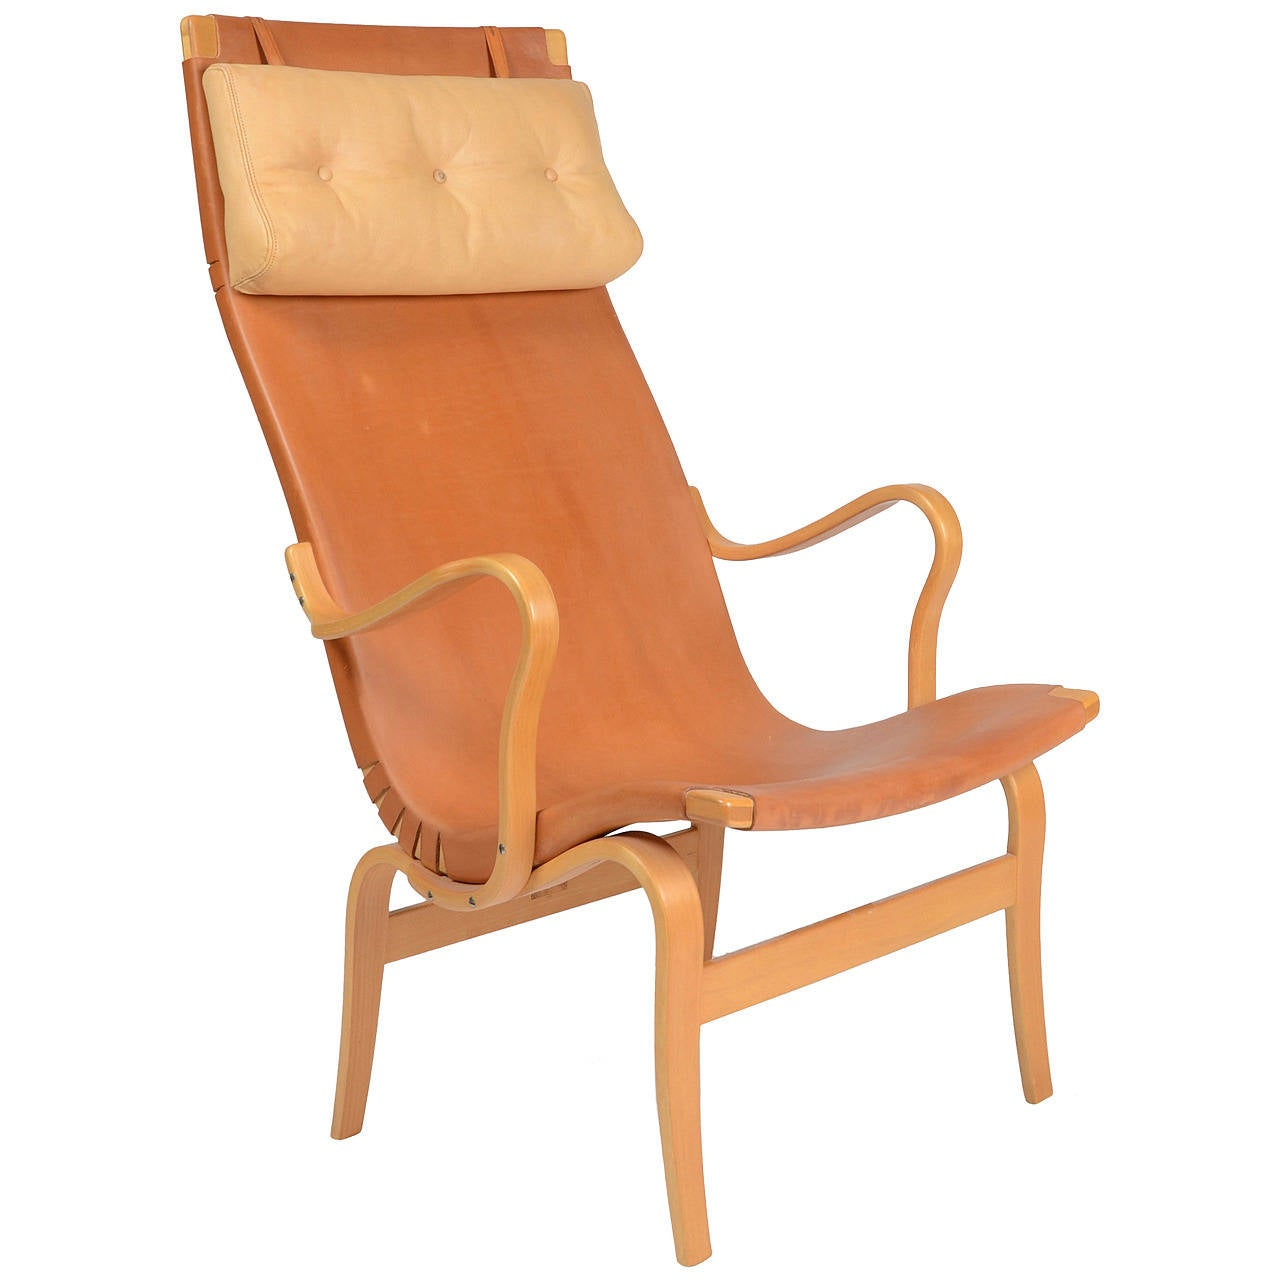 Chair, high back Eva, by Bruno Mathsson for Karl Mathsson, Sweden For Sale at 1stdibs